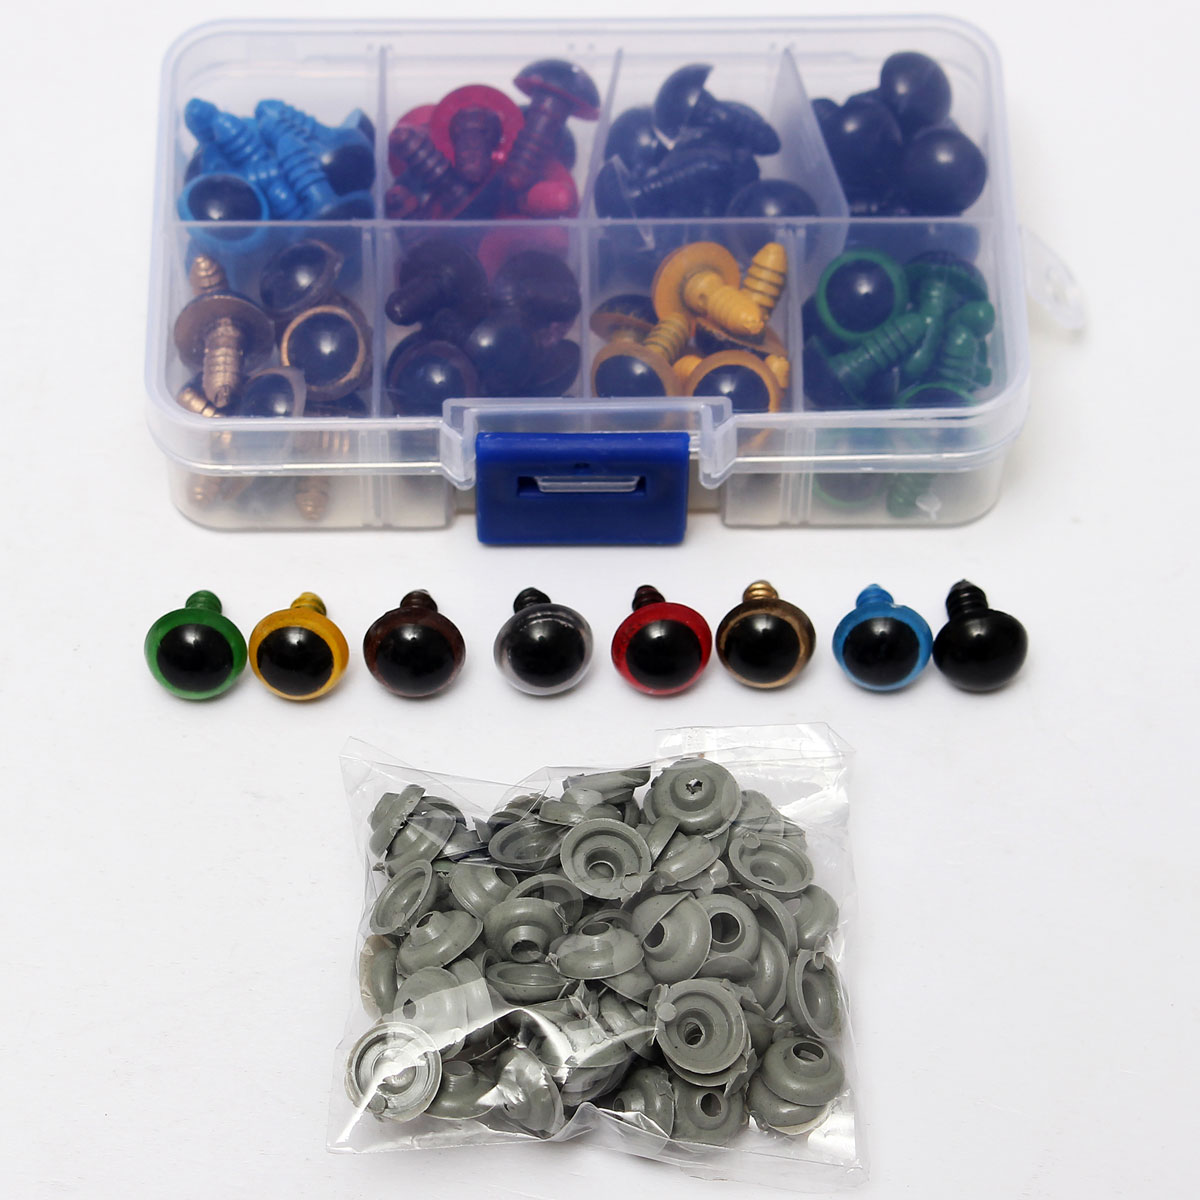 80Pairs 12mm 8 Colors-Mix Plastic Safety Eyes Box for Teddy Bear Stuffed Toy Snap Animal Puppet Doll Craft DIY